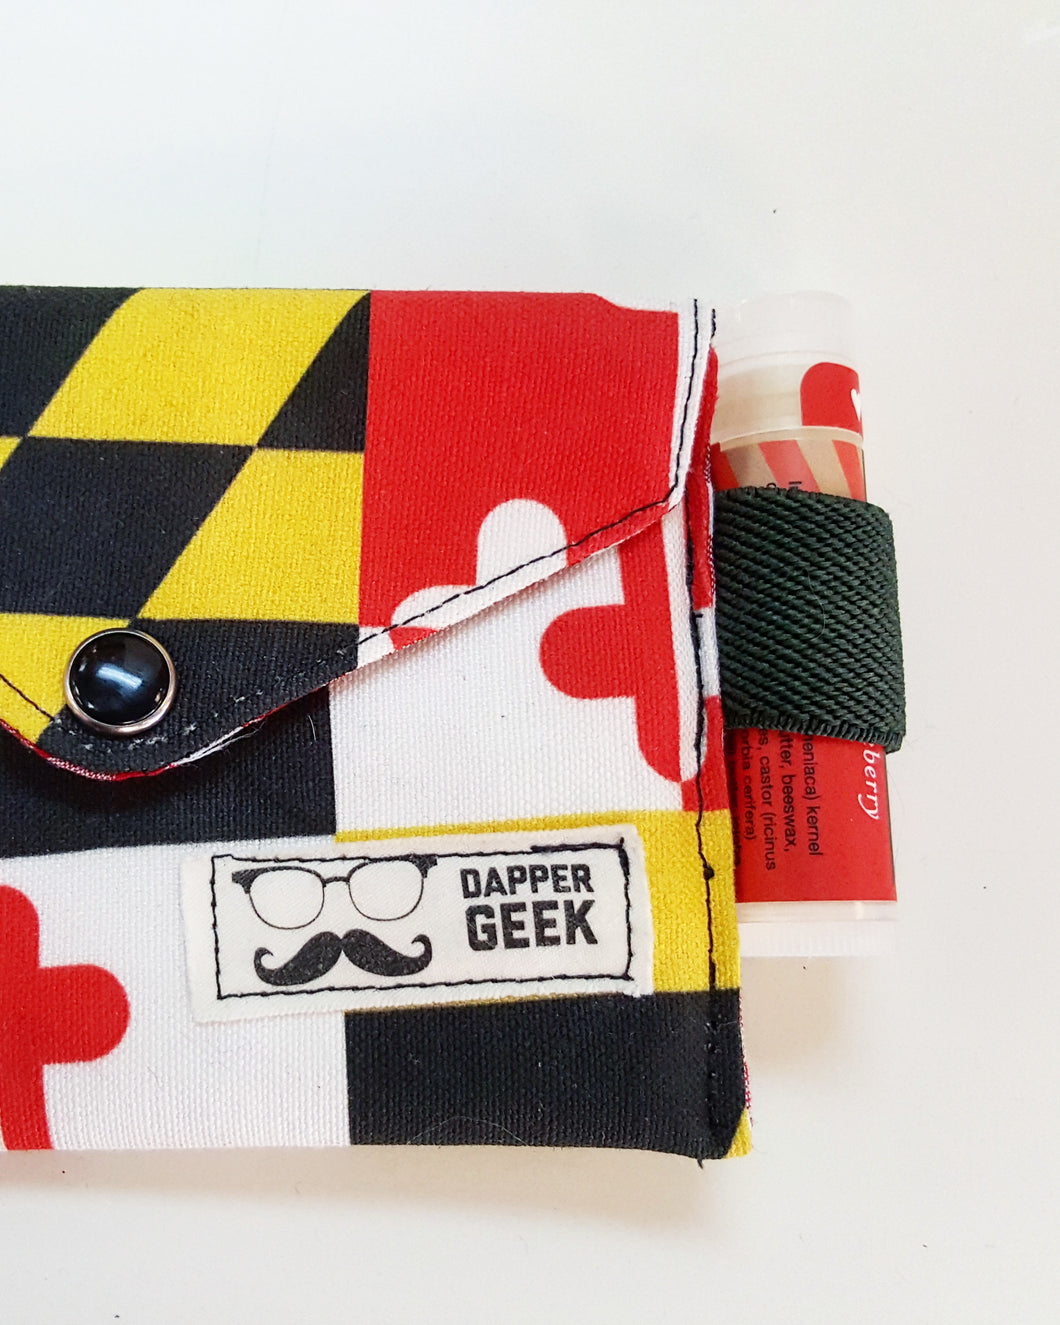 The Original Chap Stick Wallet! The Avail: MD Flag - Sally Forth Supply Co.